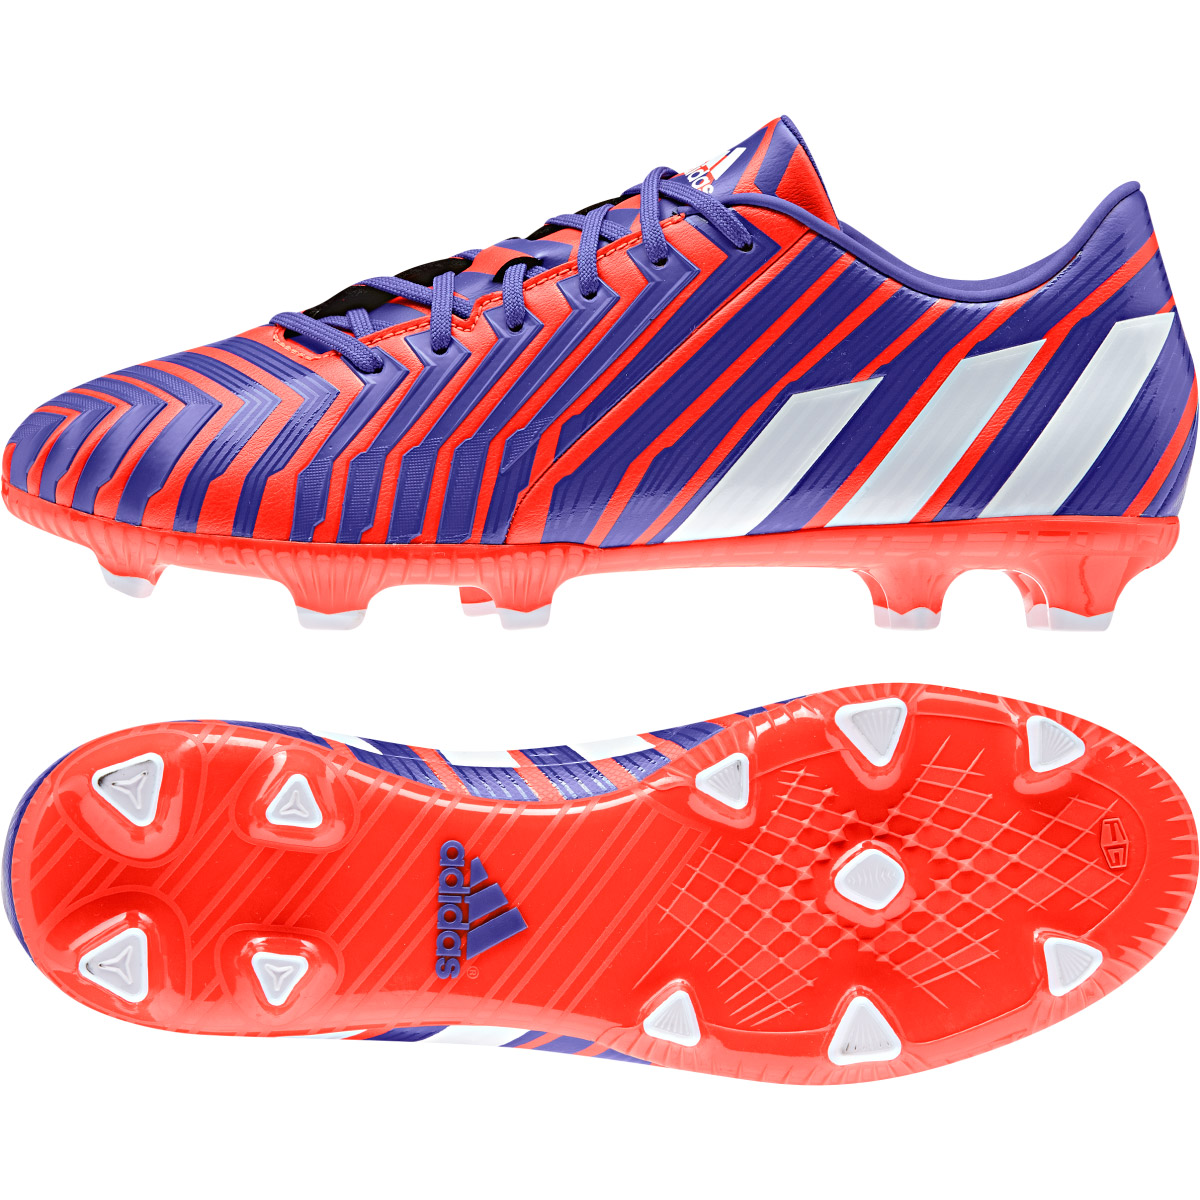 Adidas Predator Absolado Instinct Firm Ground Football Boots Red